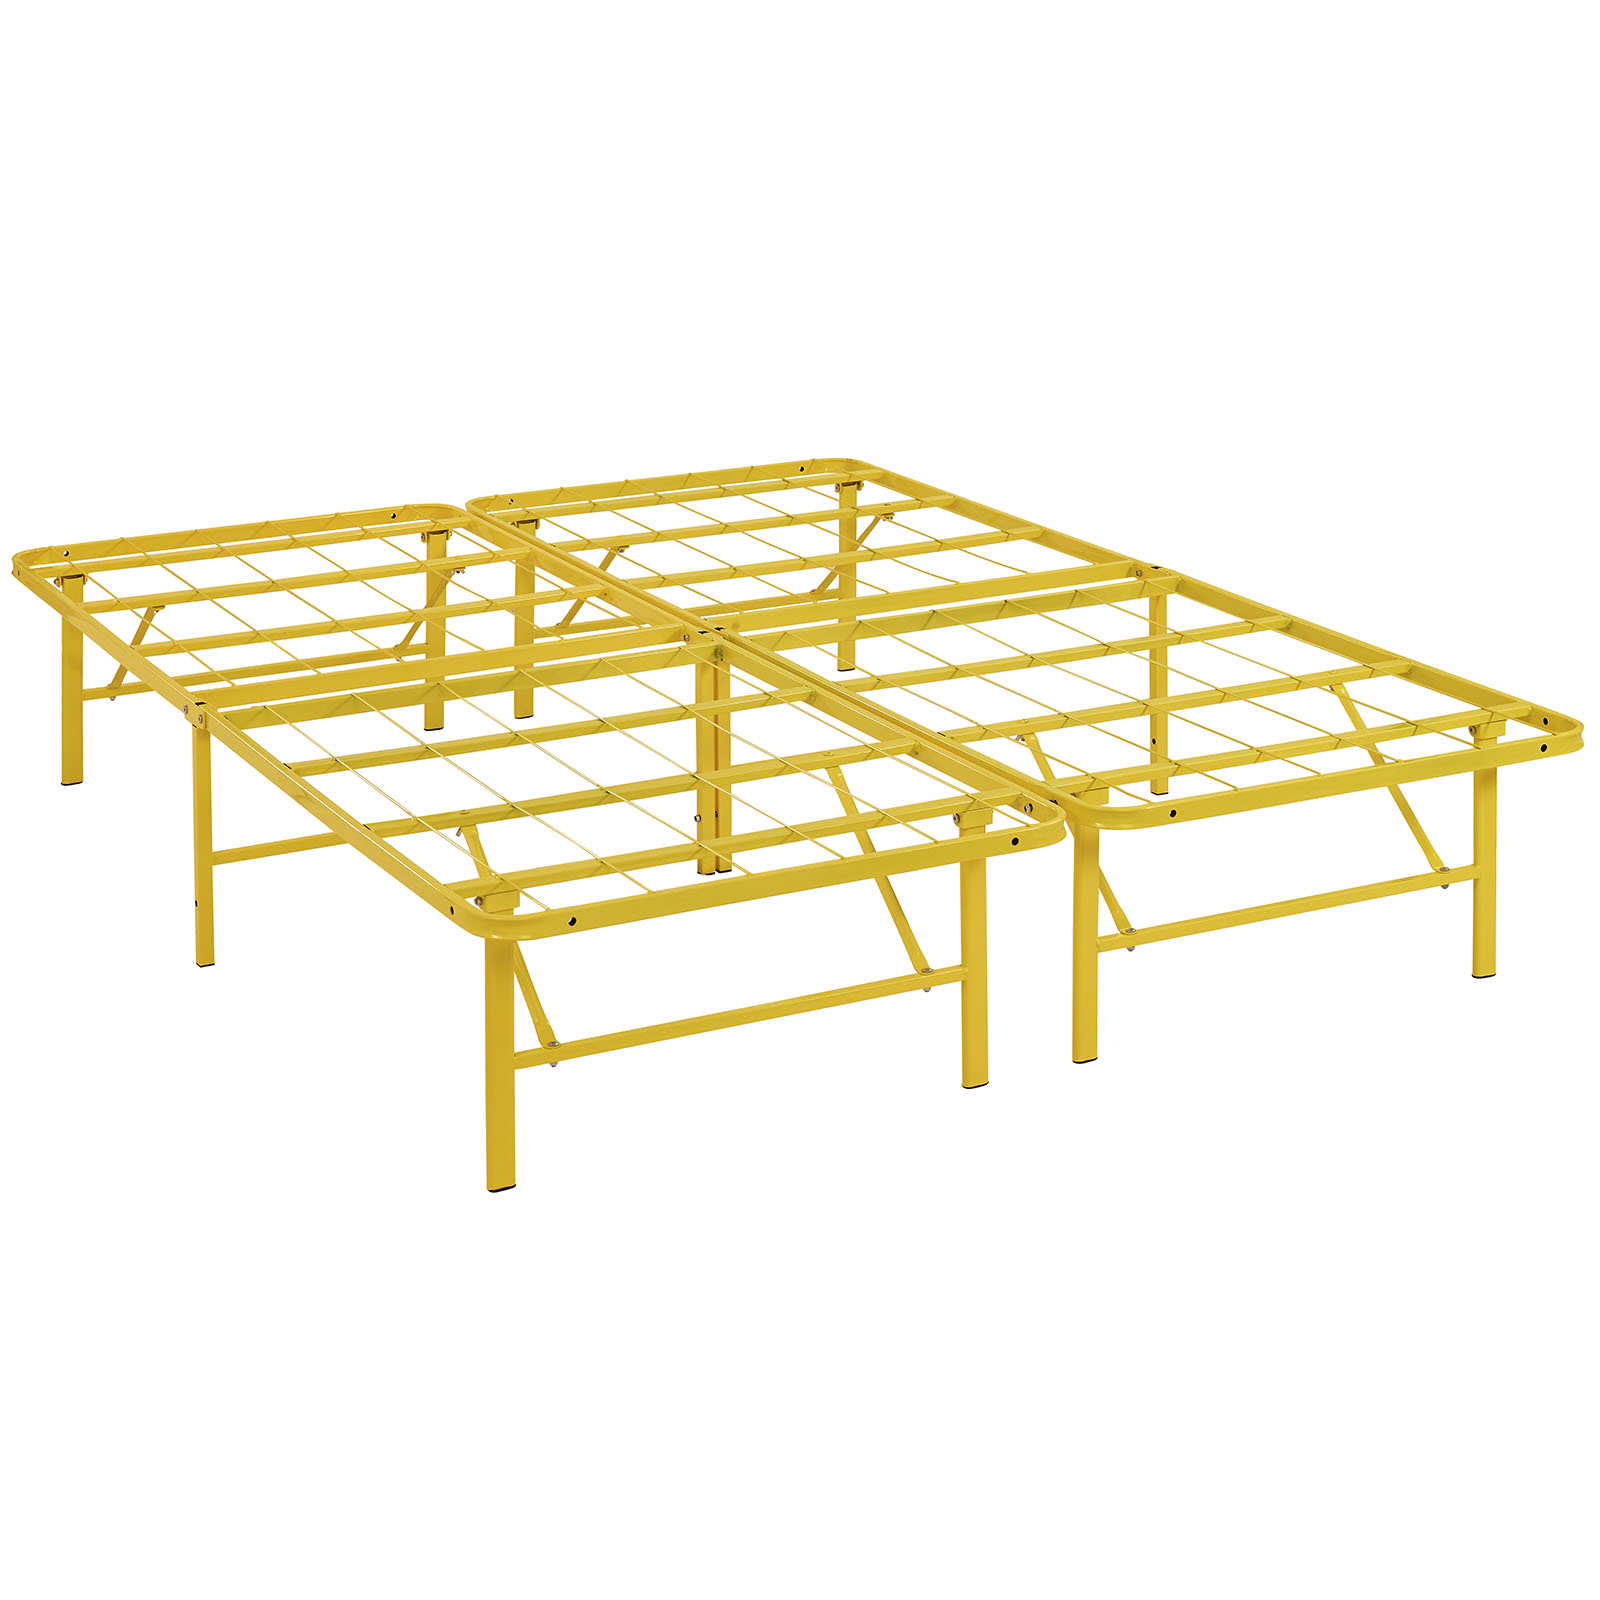 Modern Contemporary Urban Design Bedroom Full Size Platform Bed Frame, Yellow, Metal Steel